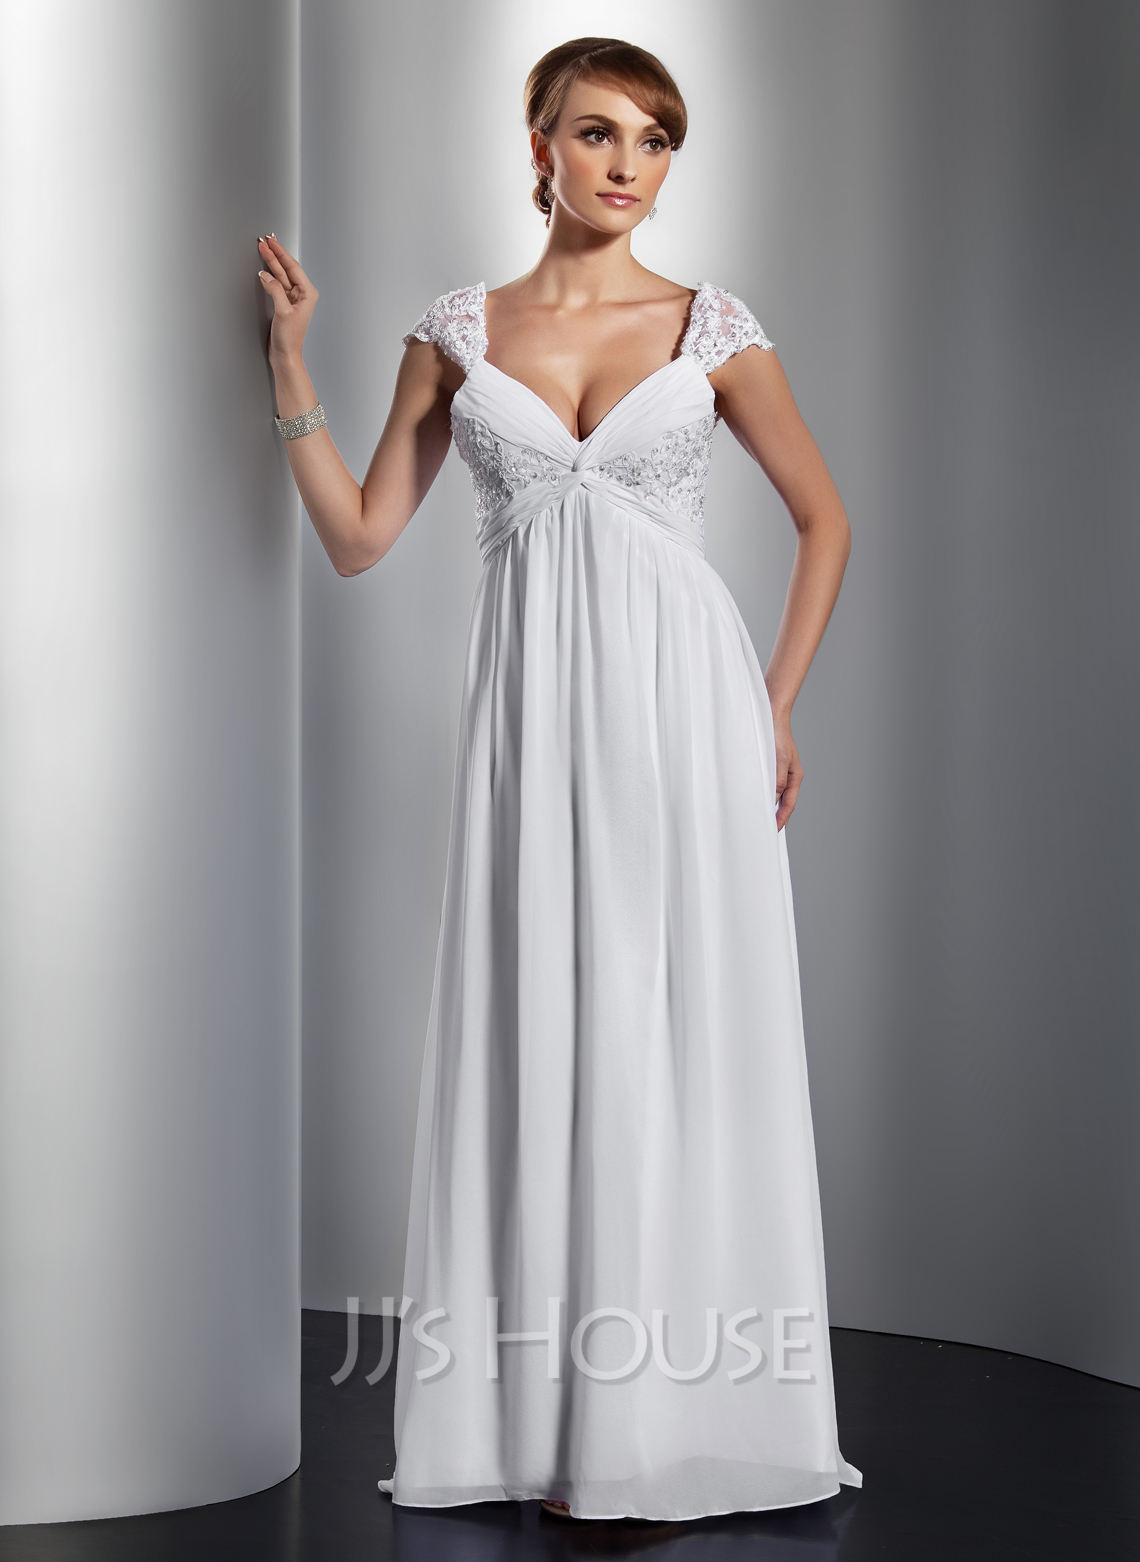 A-Line/Princess V-neck Sweep Train Chiffon Holiday Dress With Ruffle Lace Beading